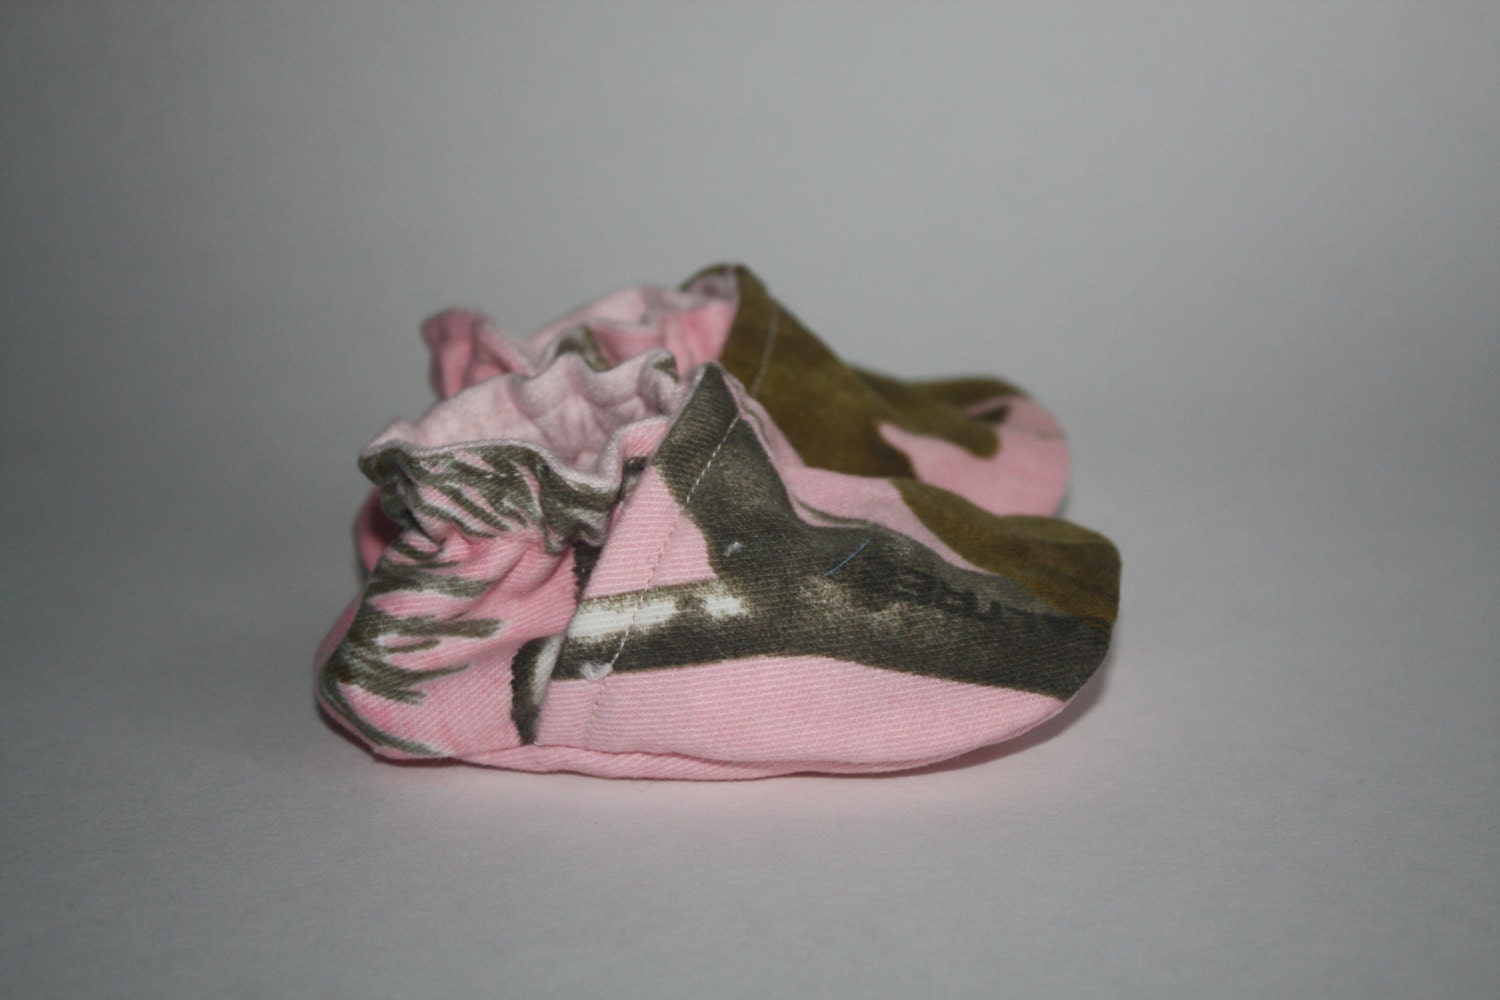 pink realtree ap camo baby shoes 0 3 months ready to ship